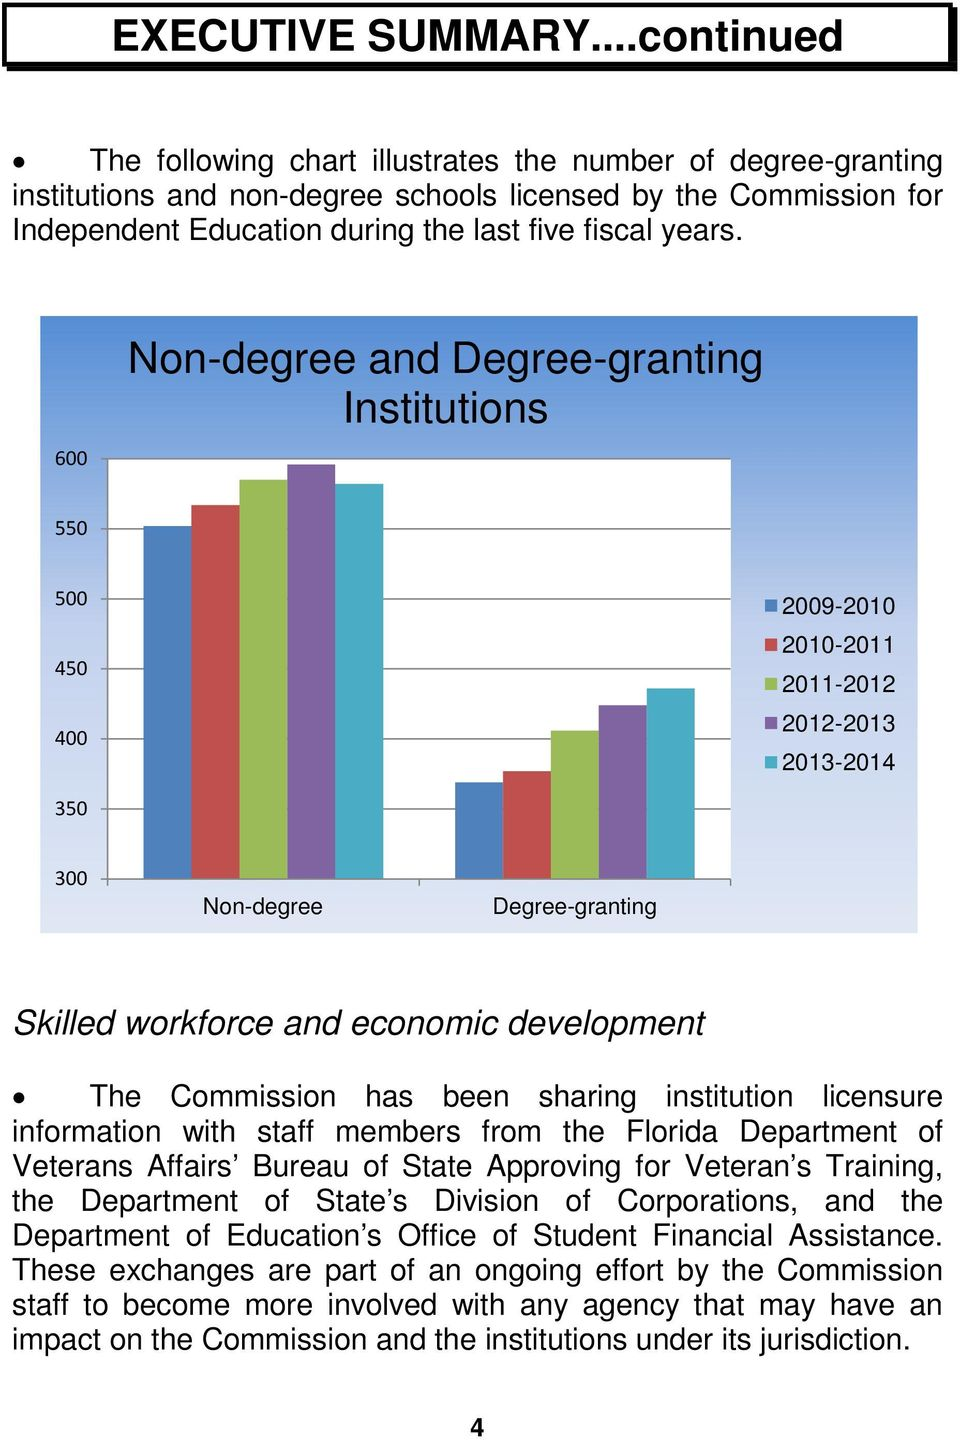 600 Non-degree and Degree-granting Institutions 550 500 450 400 2009-2010 2010-2011 2011-2012 2012-2013 2013-2014 350 300 Non-degree Degree-granting Skilled workforce and economic development The